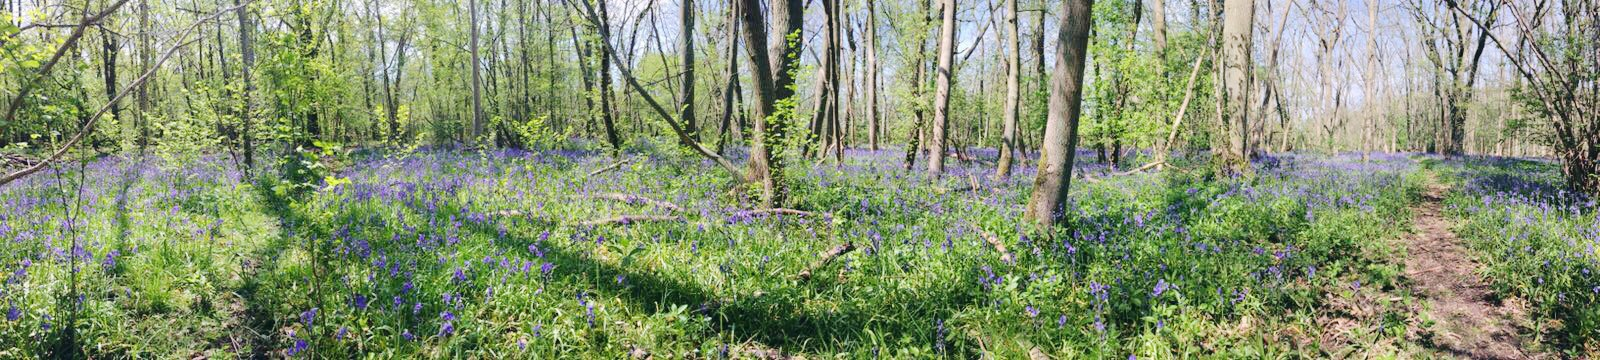 bluebell woods panoramic 2